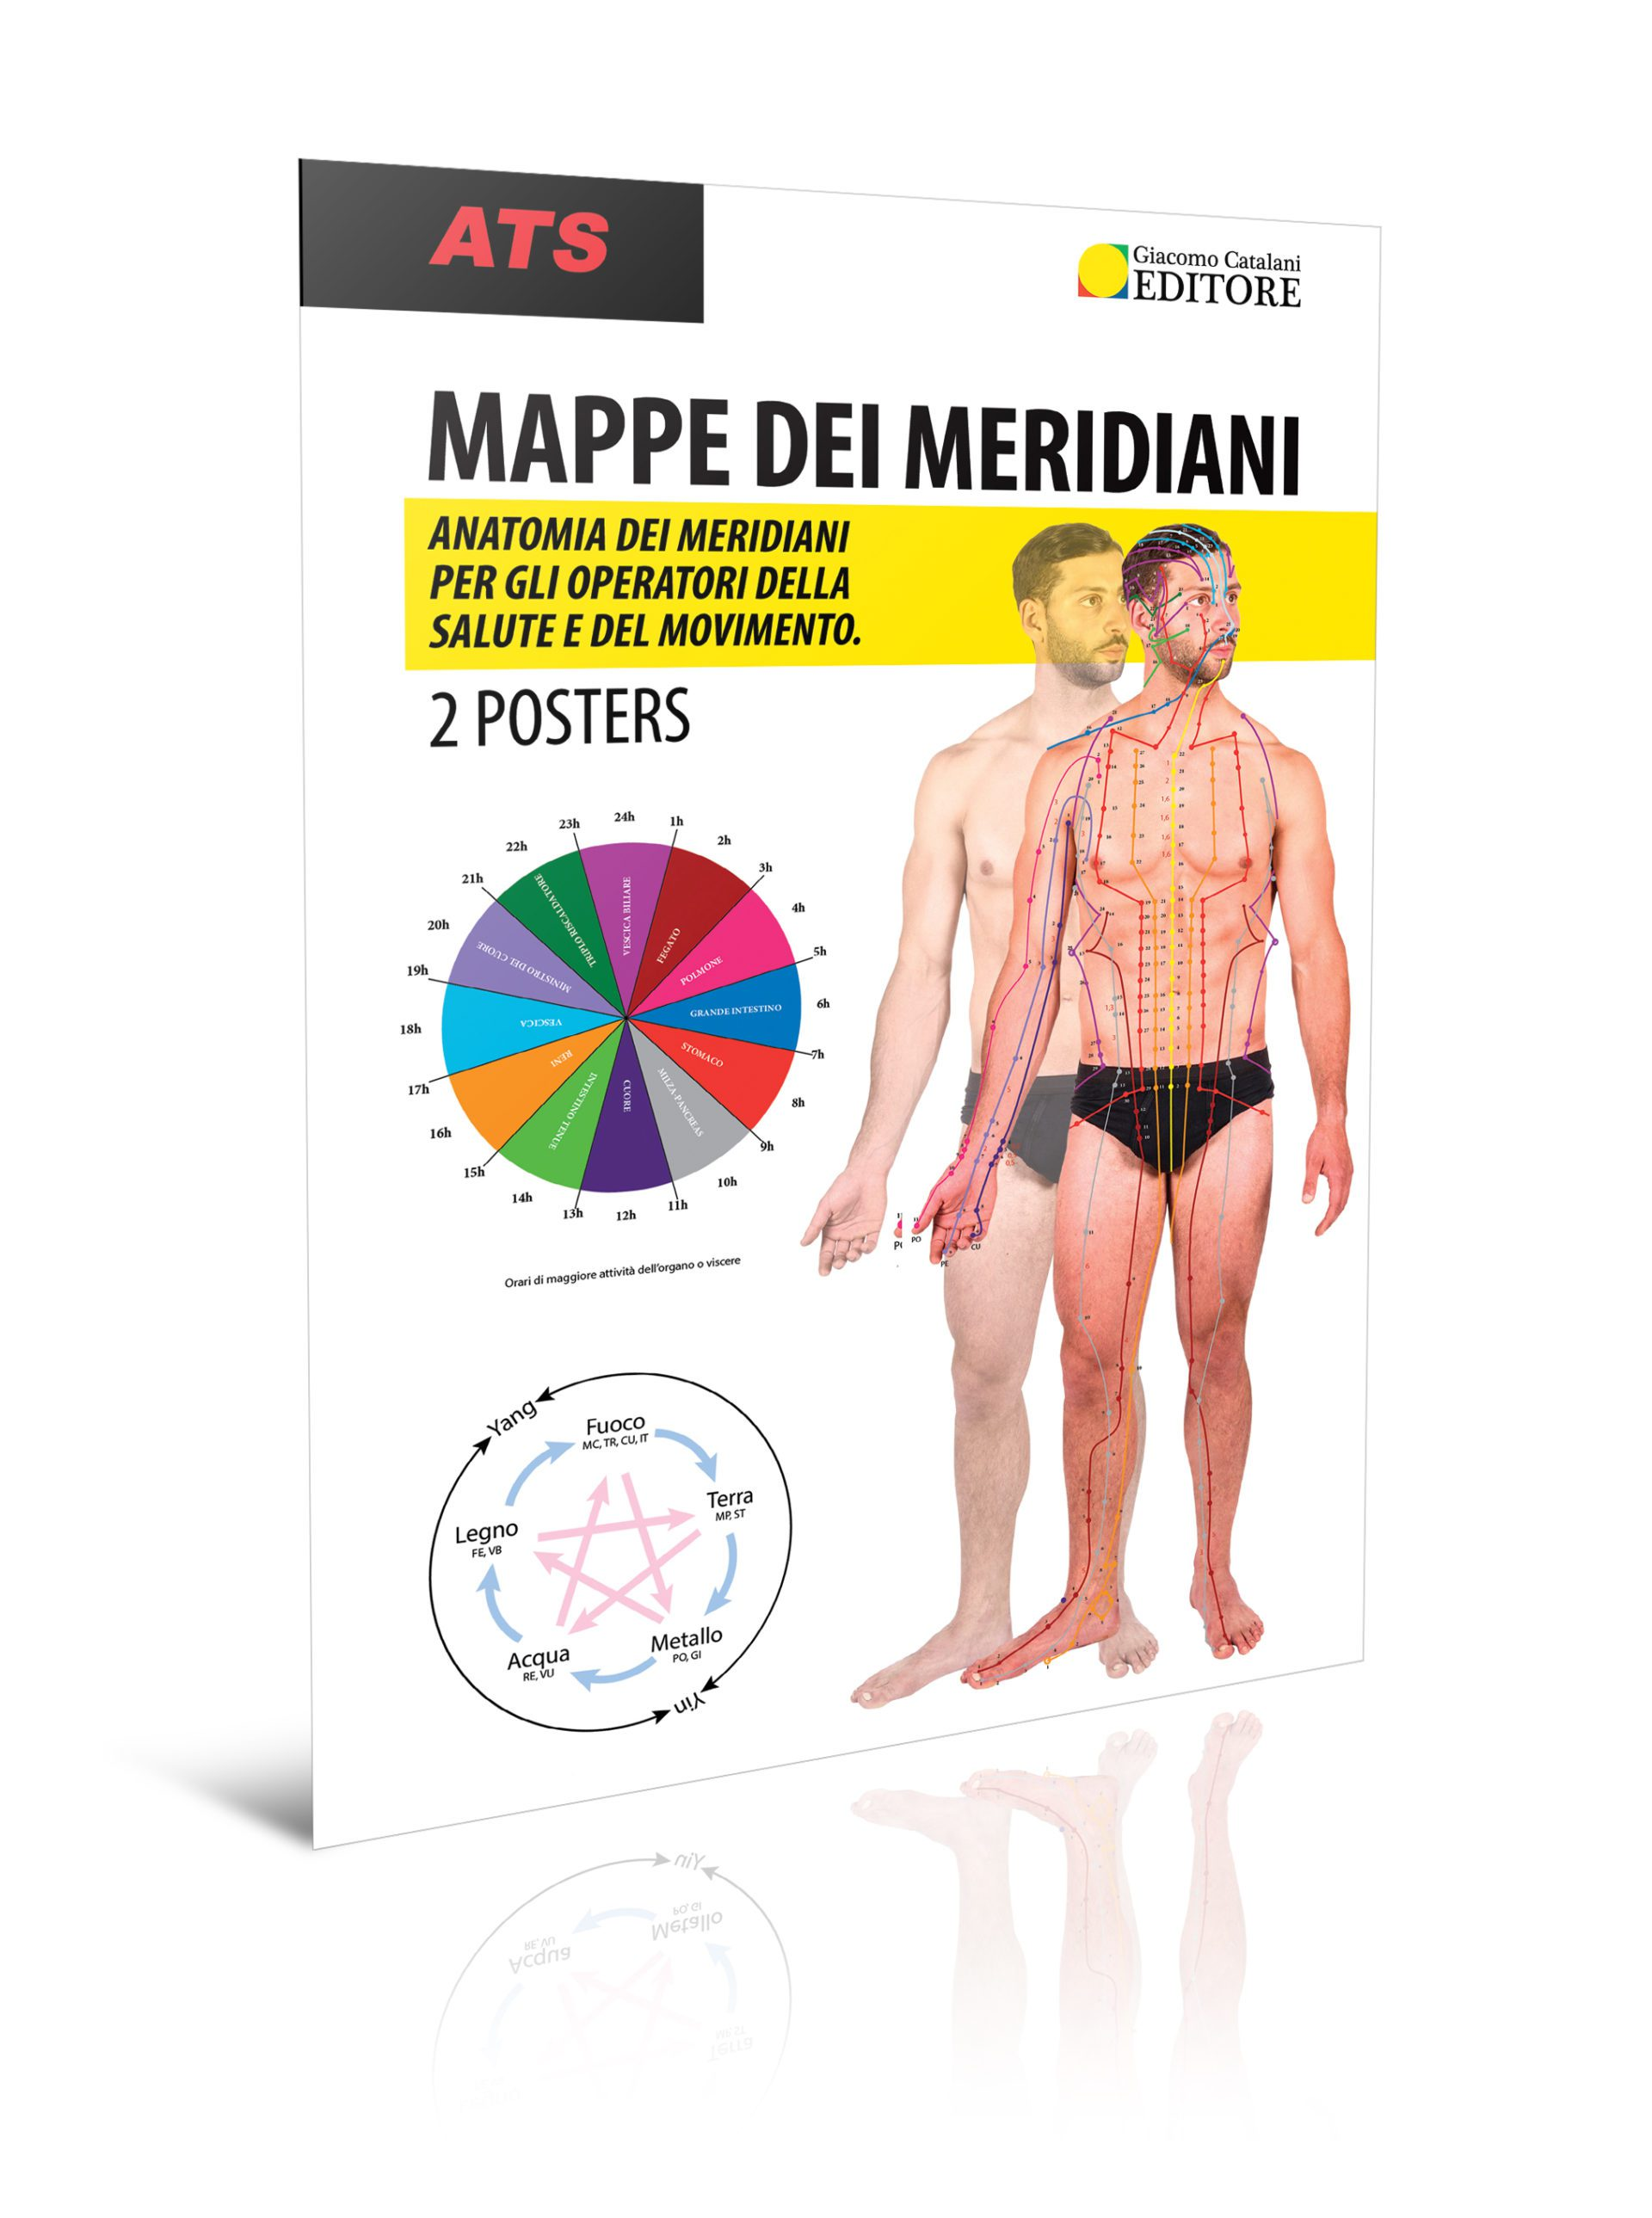 Mappe-Meridiani-ATS